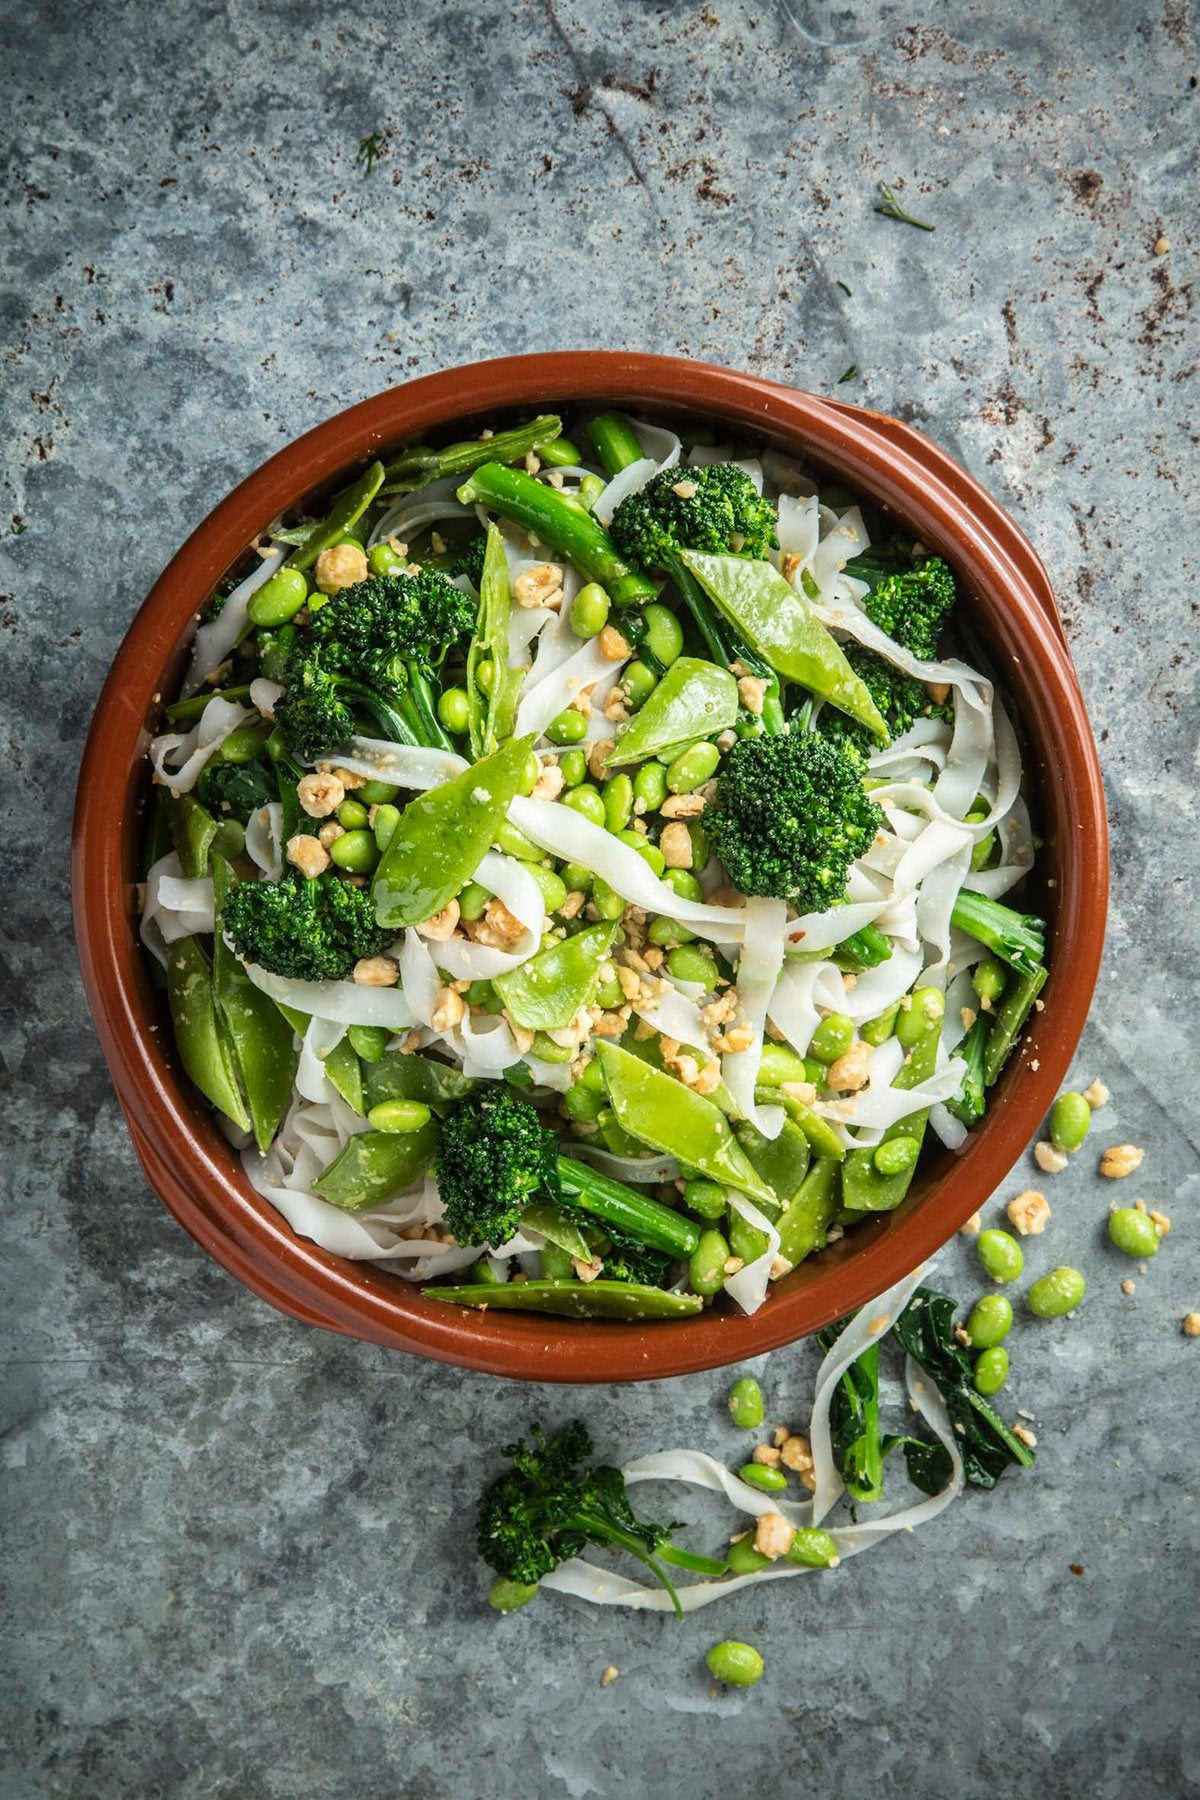 Broccoli, edamame, snow peas, hazelnut, rice noodles, chilli and lime dressing salad